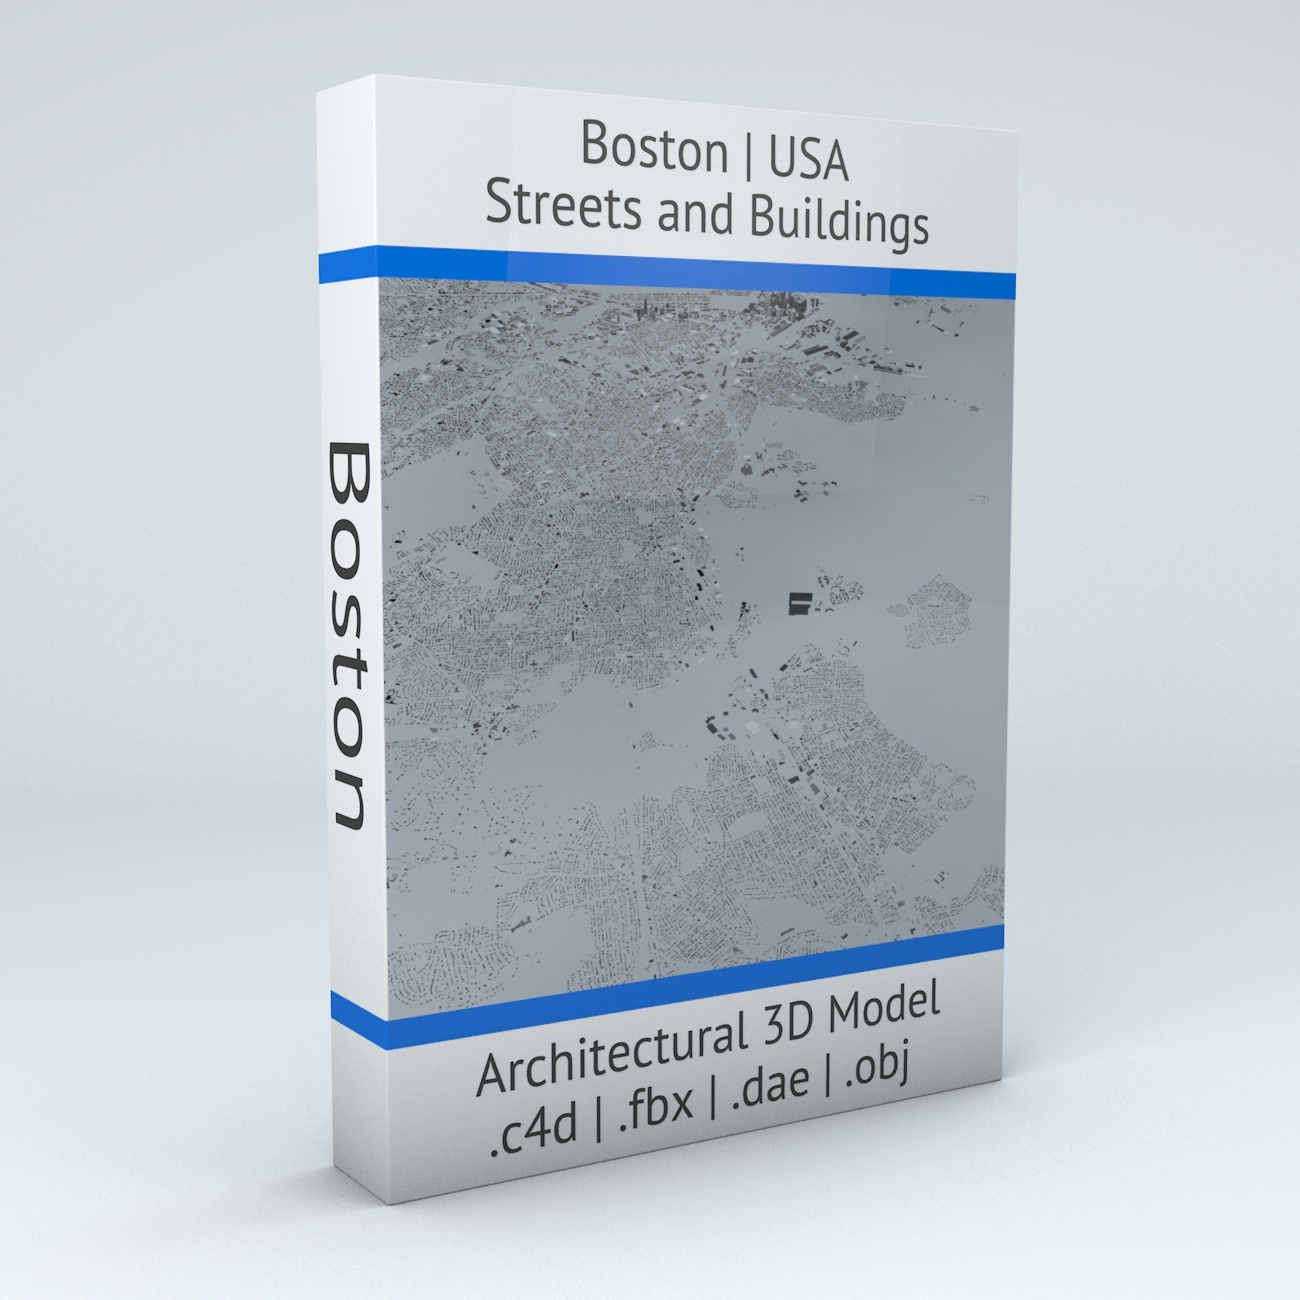 Boston Streets and Buildings Architectural 3D Model